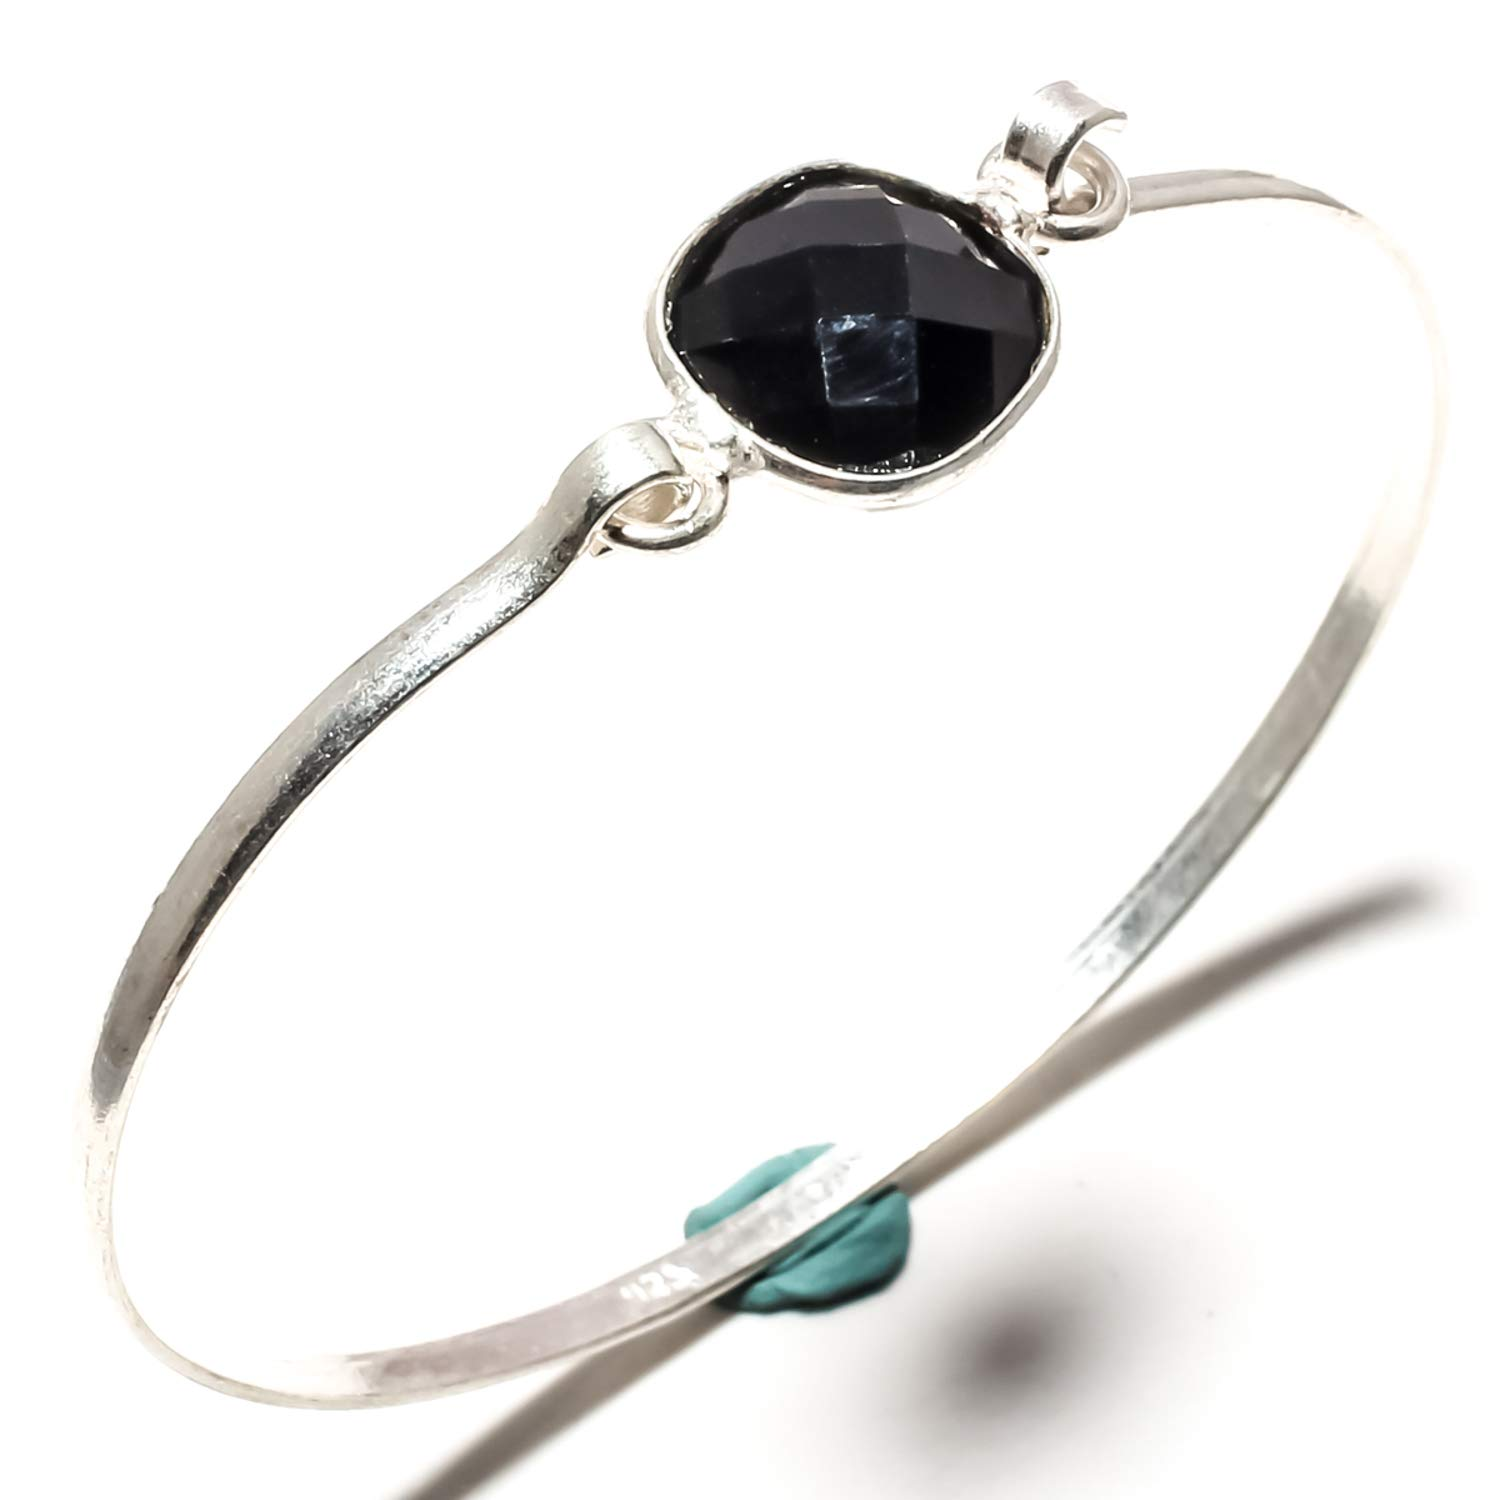 SF-1640 Adjustable Size Cuff Bracelet Stunning Faceted Black Onyx Gemstone Bangle Kada Handmade 925 Sterling Silver Plated Jewelry